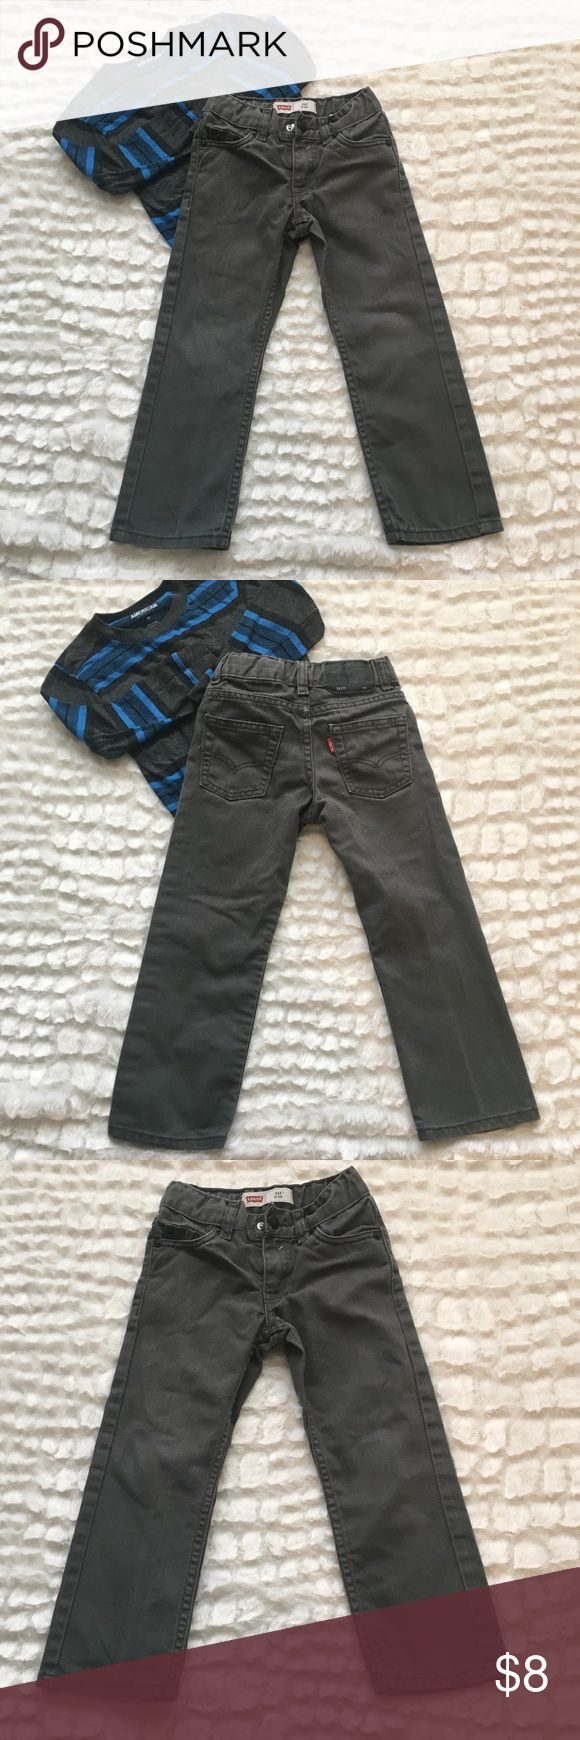 Boys Levi's 4 regular 511 slim gray jeans Boys Levi's size 4 regular 511 slim gray jeans. With belt loops. Adjustable waist. Front zipper and clasp fastener. 2 pockets in the front and 2 in the back. Good condition Levi's Bottoms Jeans